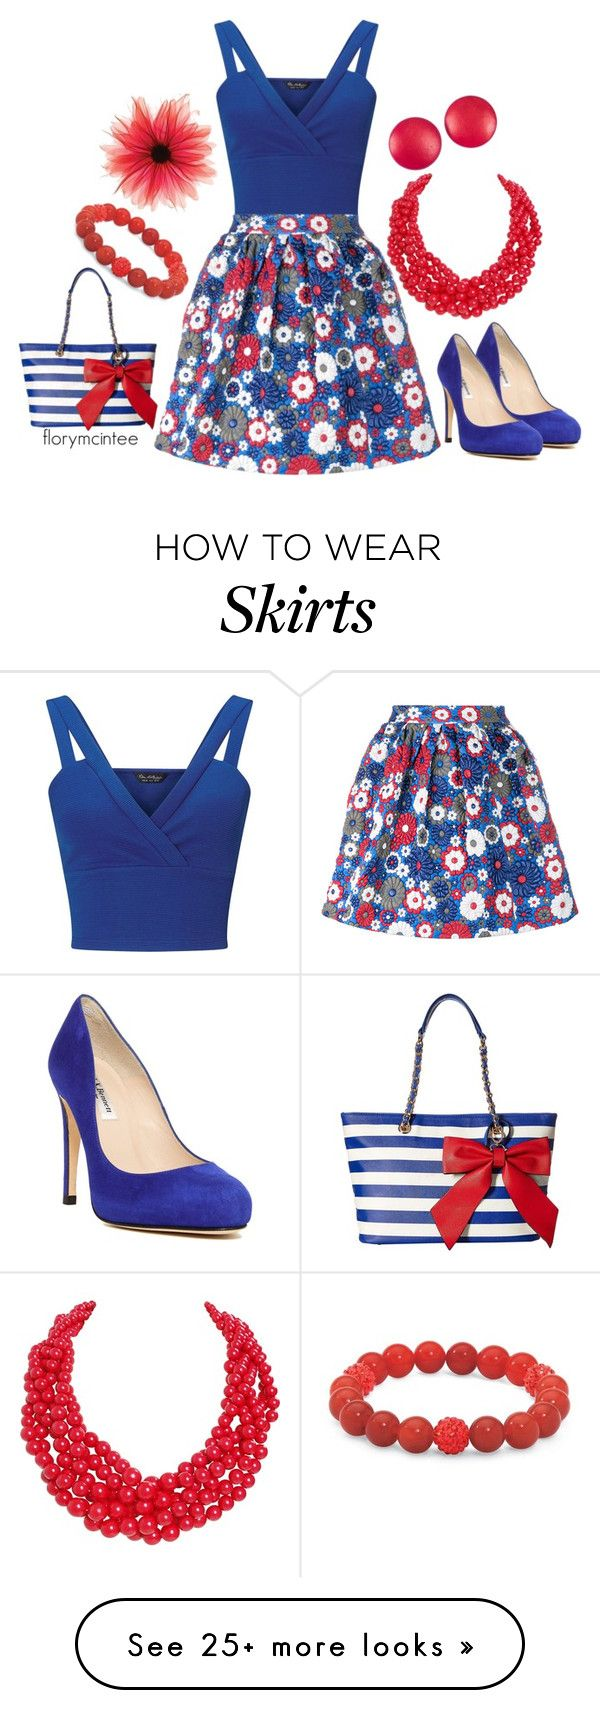 """House Of Holland Floral Leather Mini Skirt"" by florymcintee on Polyvore featuring Miss Selfridge, House of Holland, L.K.Bennett, Humble Chic, Charles Jourdan, Palm Beach Jewelry and Gabriella Rocha"